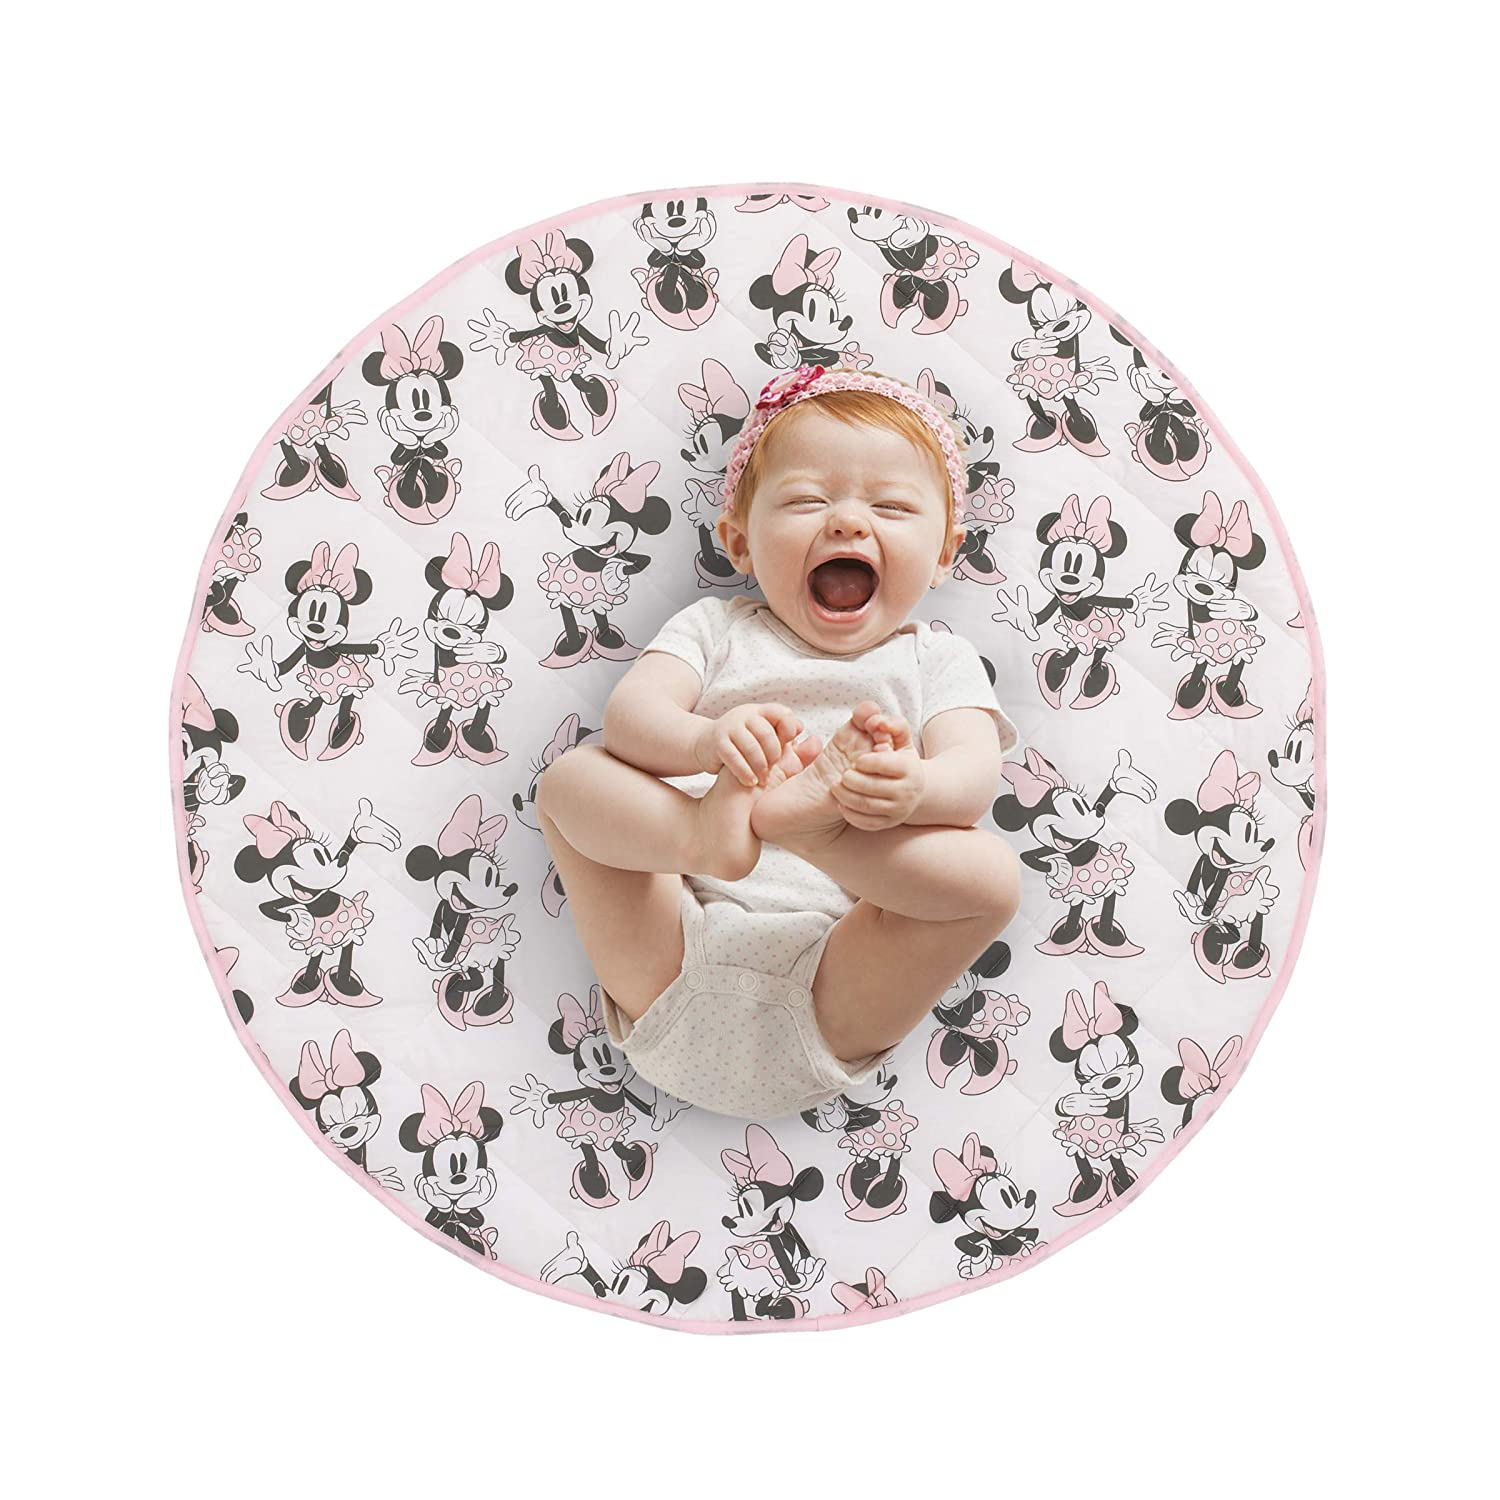 Disney Minnie Mouse Round Quilted Tummy Time Play-mat, Pink Grey White Black, 36